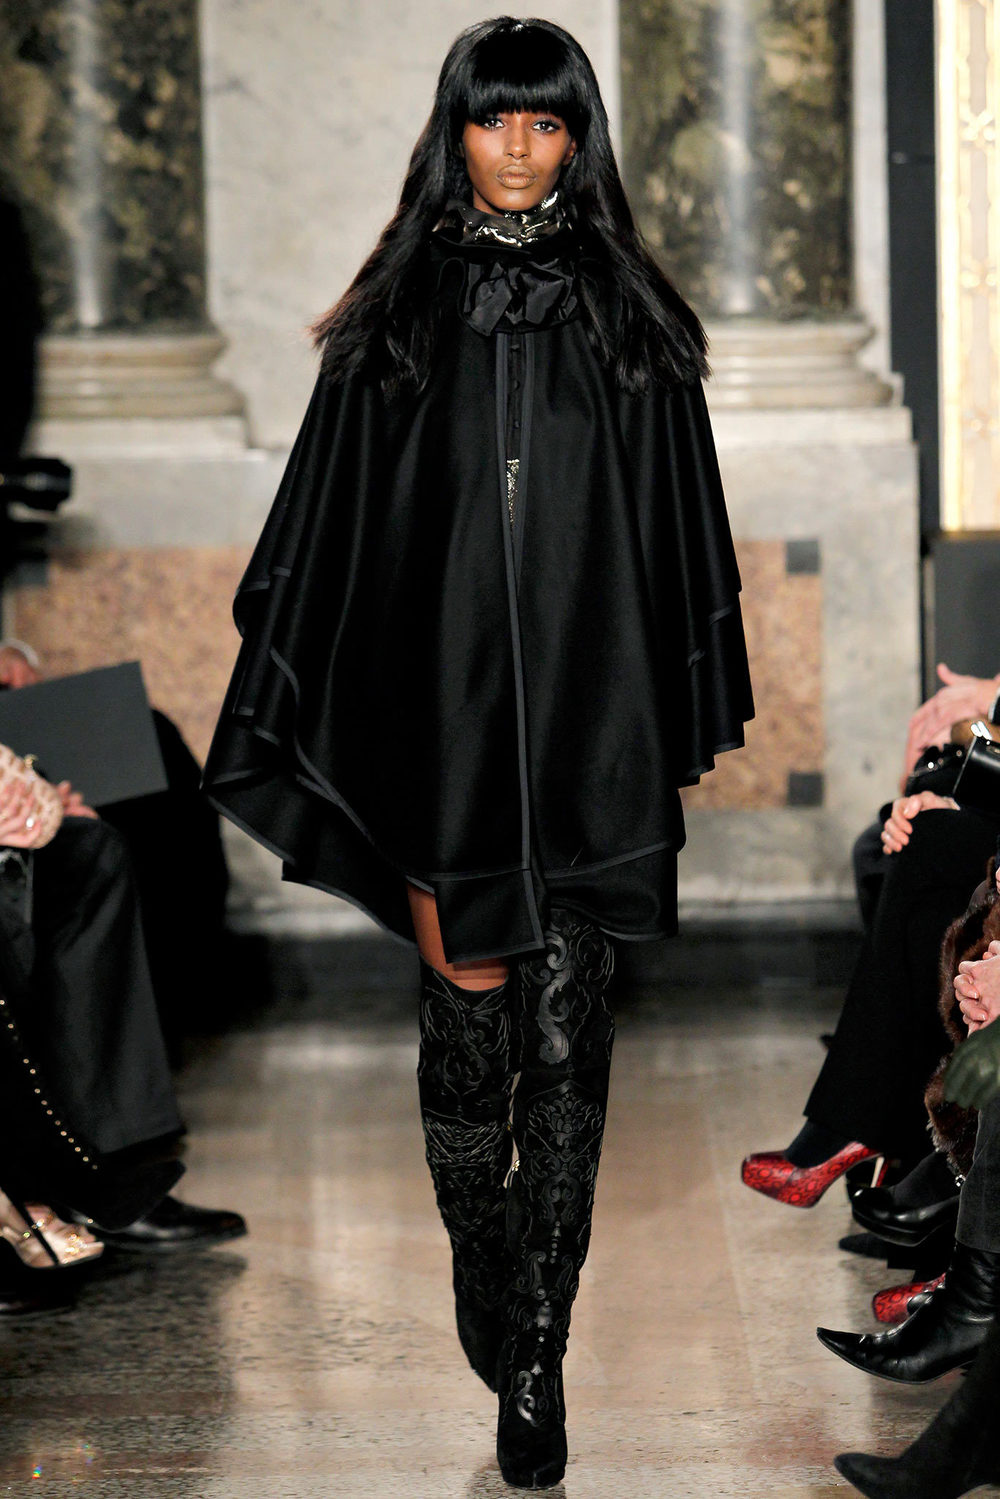 Emilio-Pucci-Fall-Winter-2013-2014-Runway-Show-13.jpg